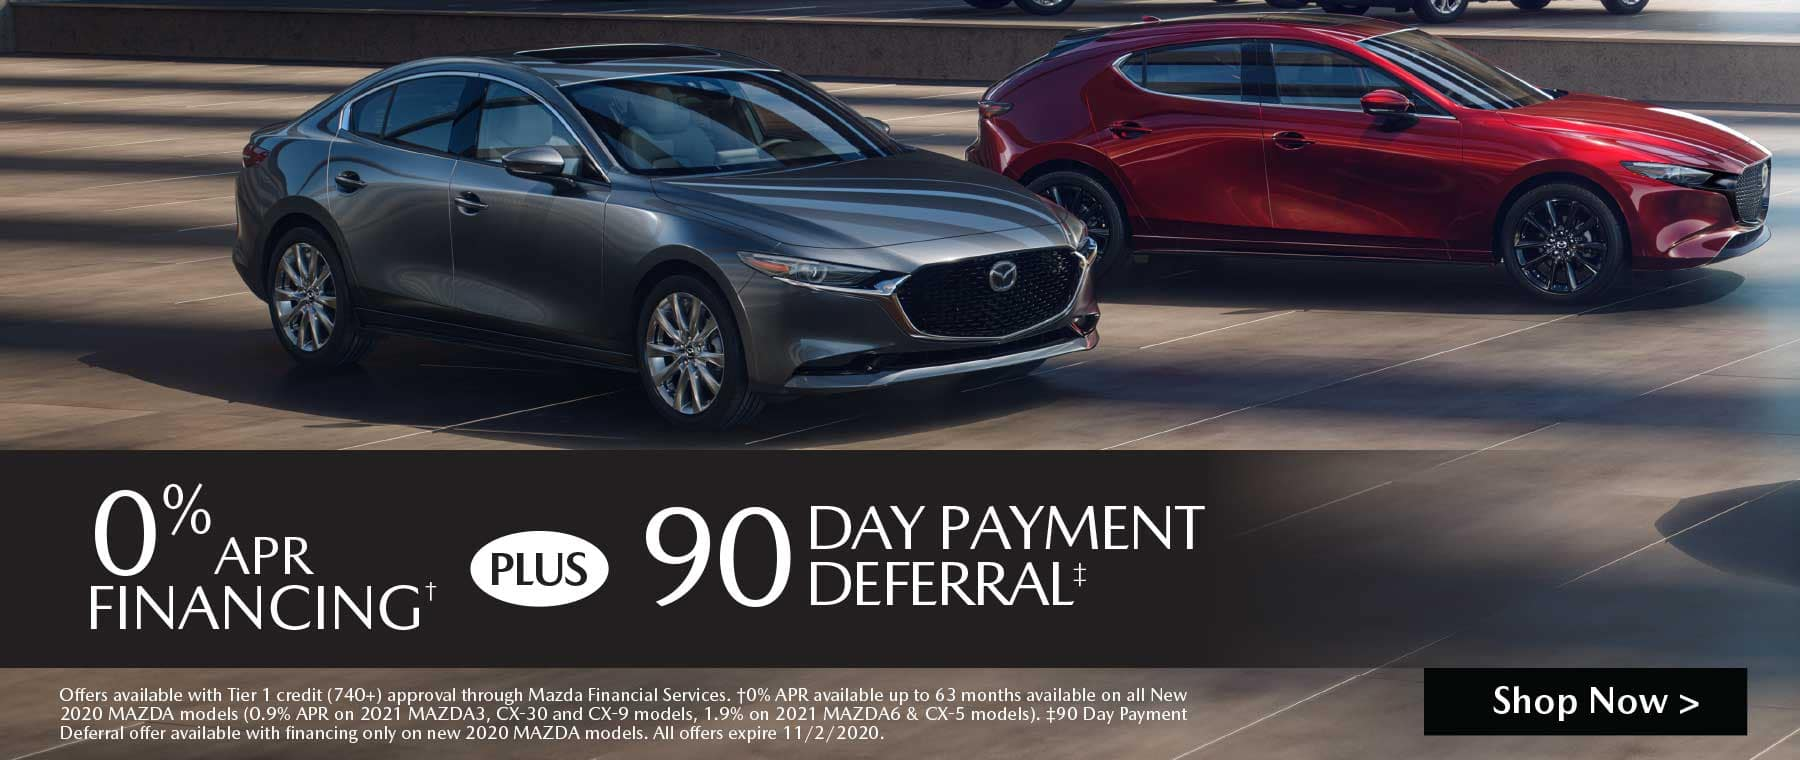 o New Car APR Special Offer Mazda of New Rochelle NY